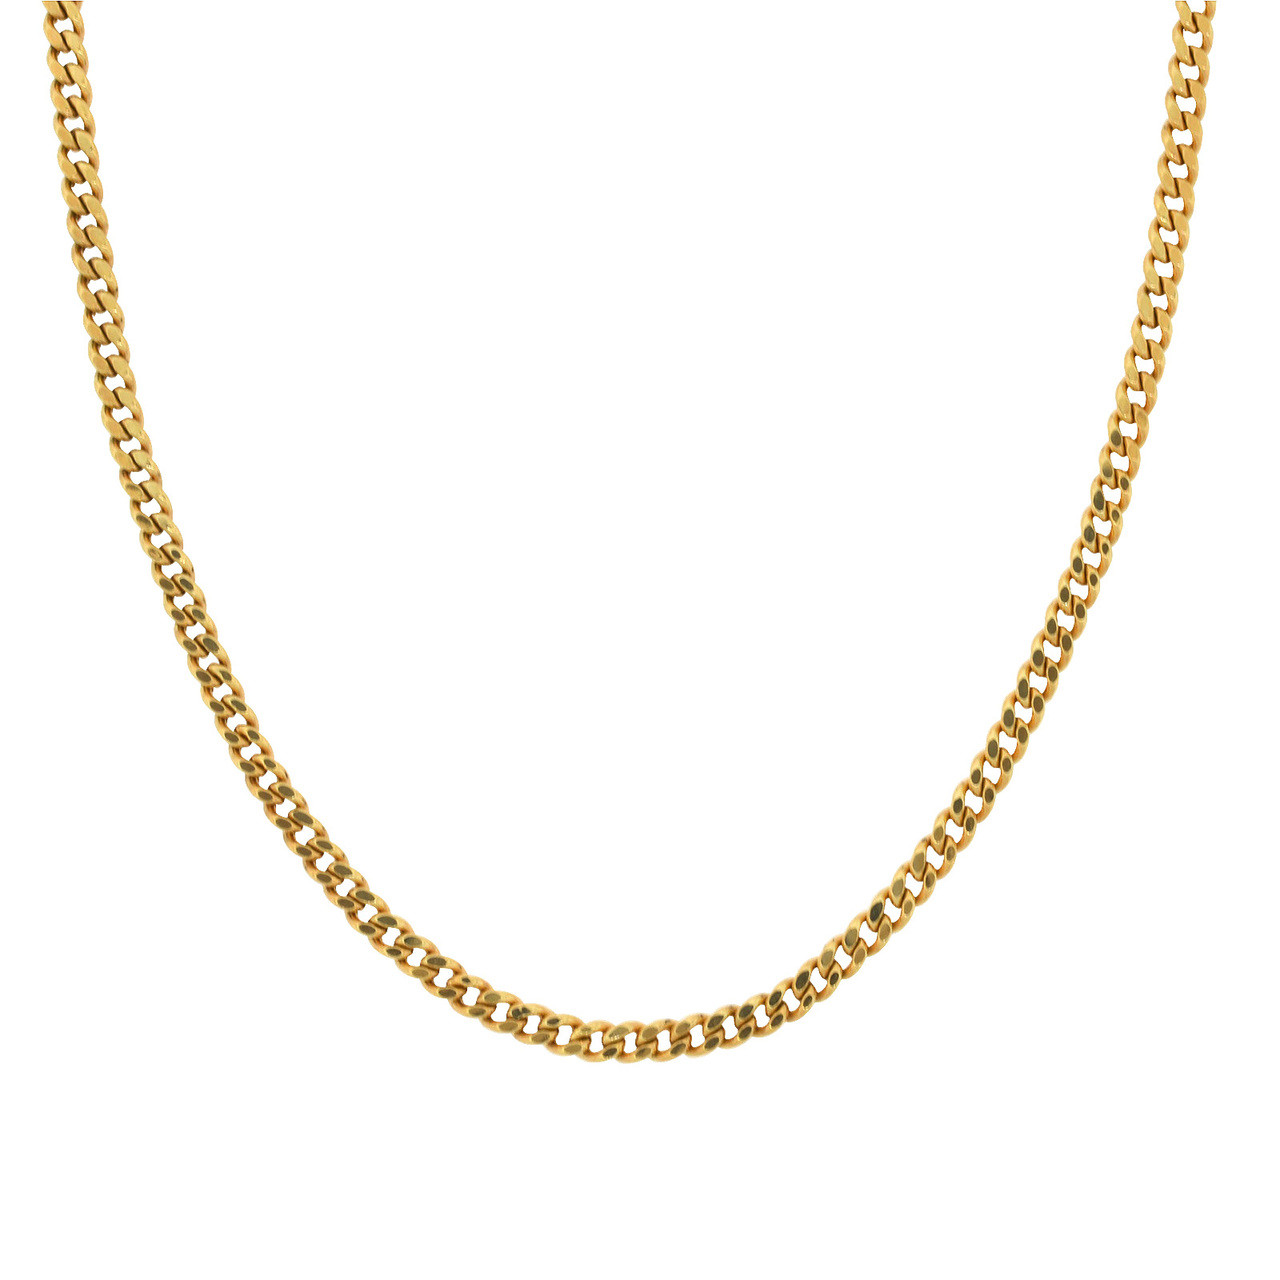 Hollow 18k (750 Stamp) Gold 3mm Cuban Link Chain